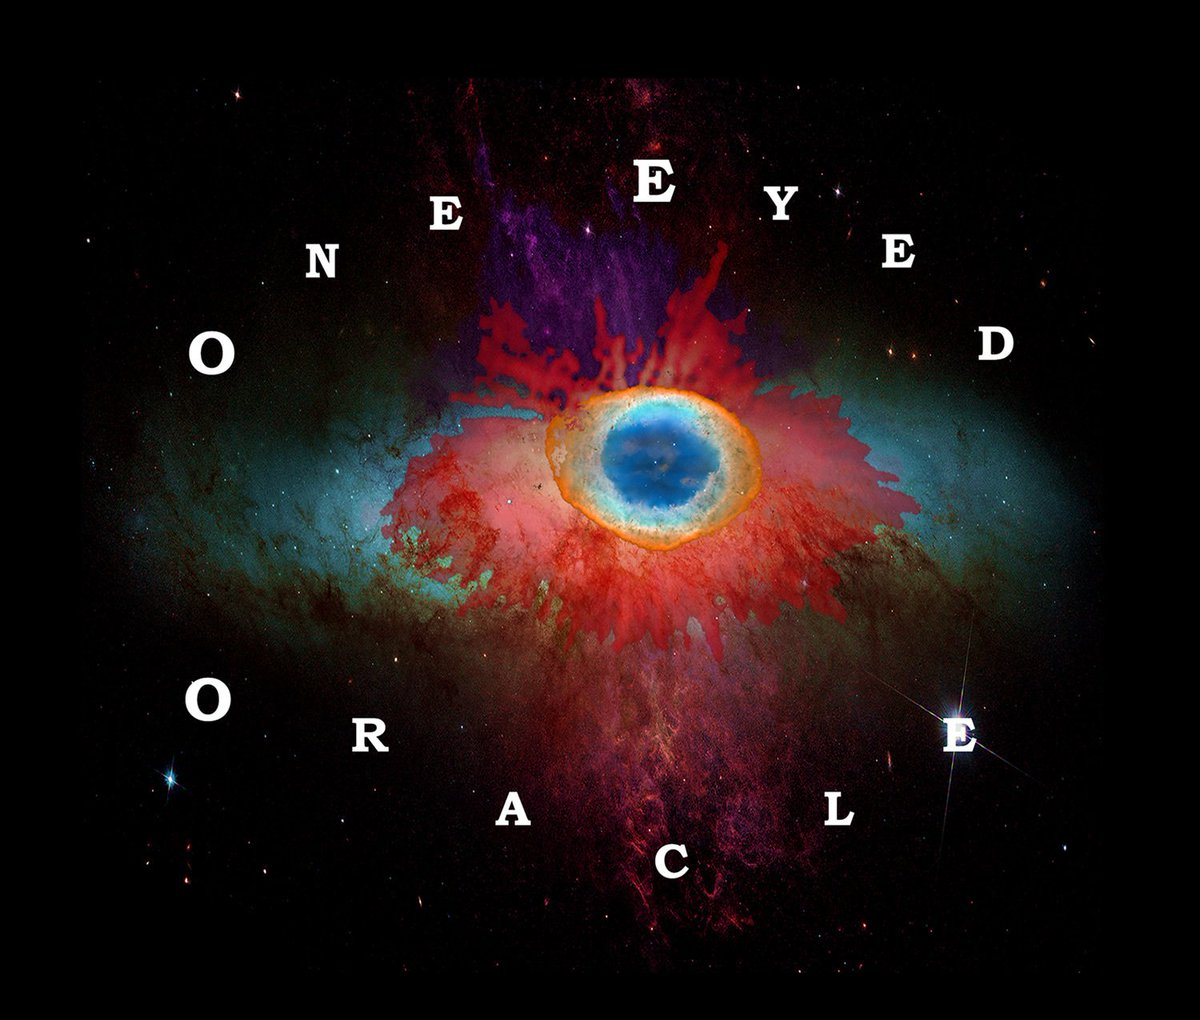 RT @Eckley949: Delightfully quirky,  @OneEyedOracle #nowplaying #GenerationNext @949TheRock https://t.co/FW4231w2LI